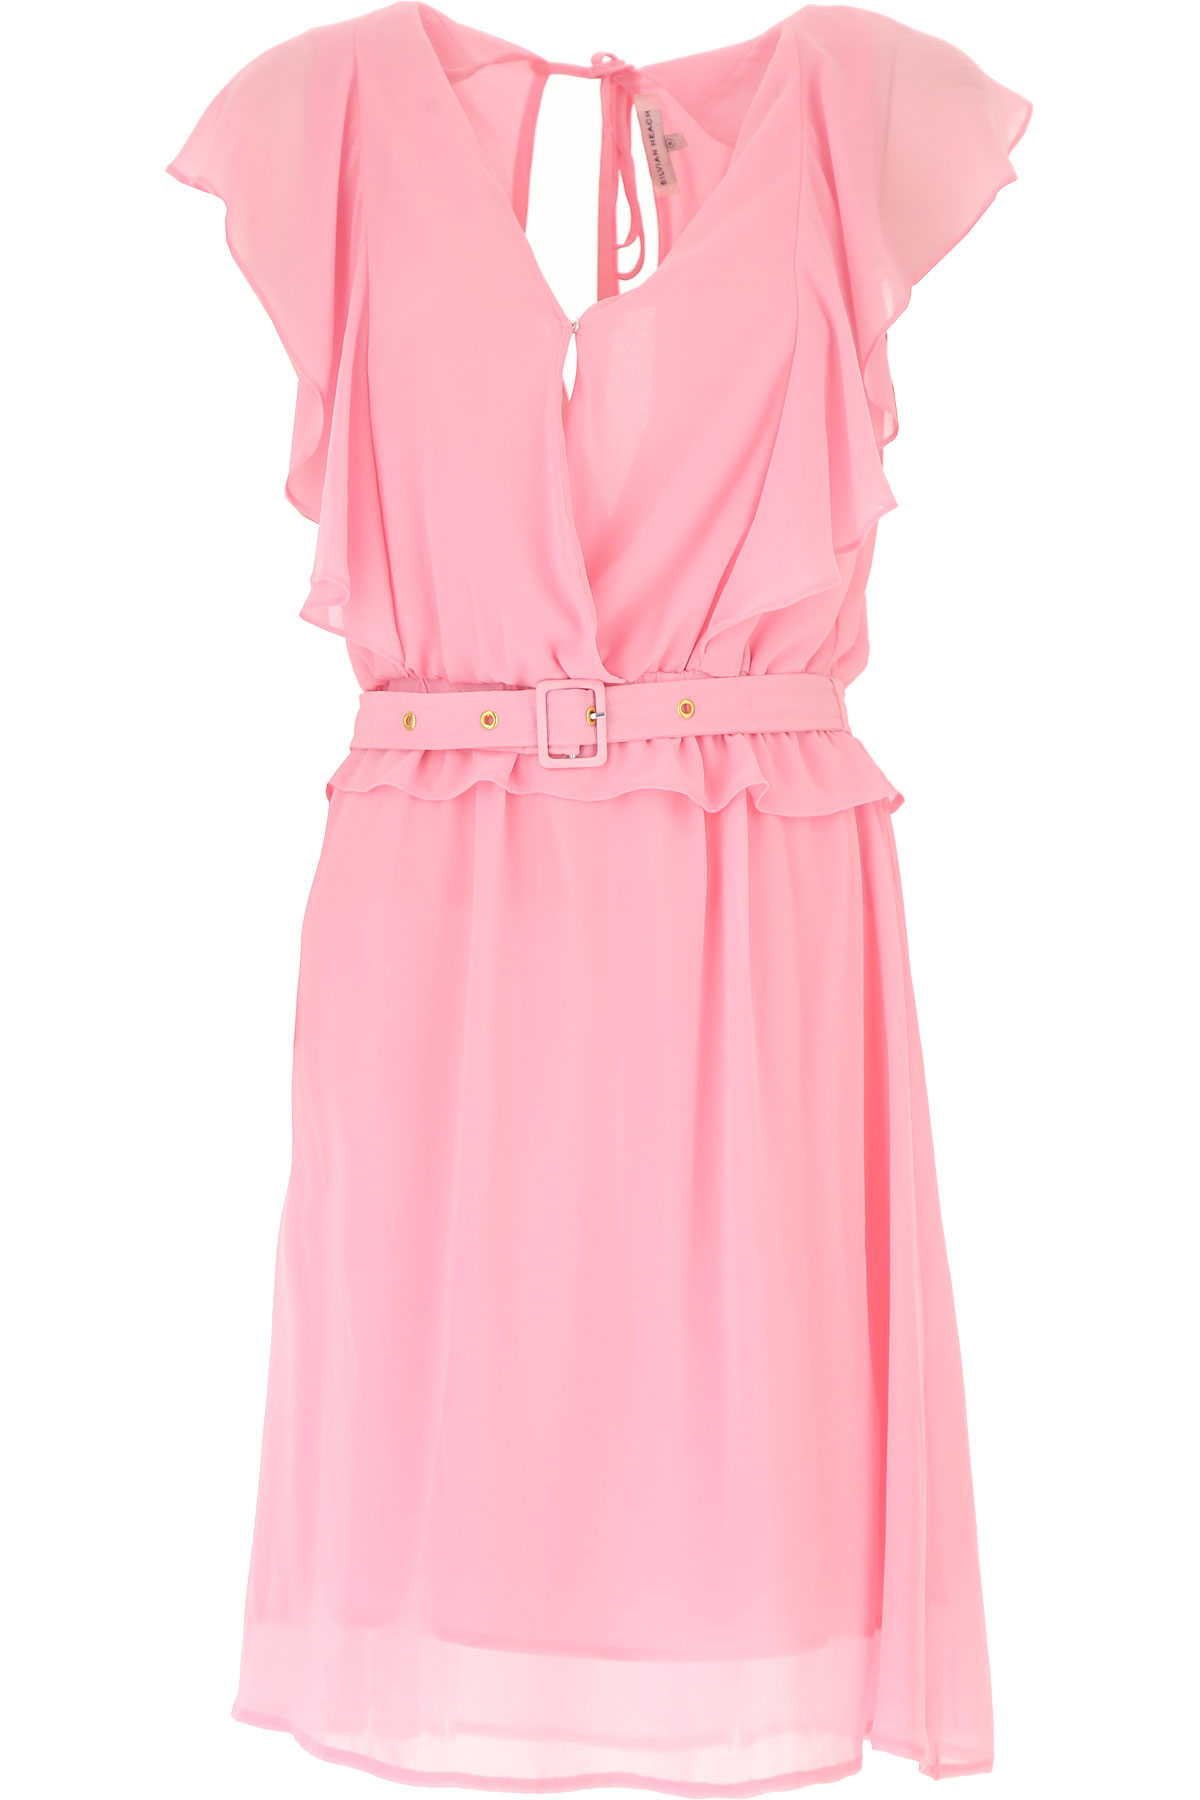 Silvian Heach Dress for Women, Evening Cocktail Party On Sale in Outlet, Candy Pink, polyester, 2019, 6